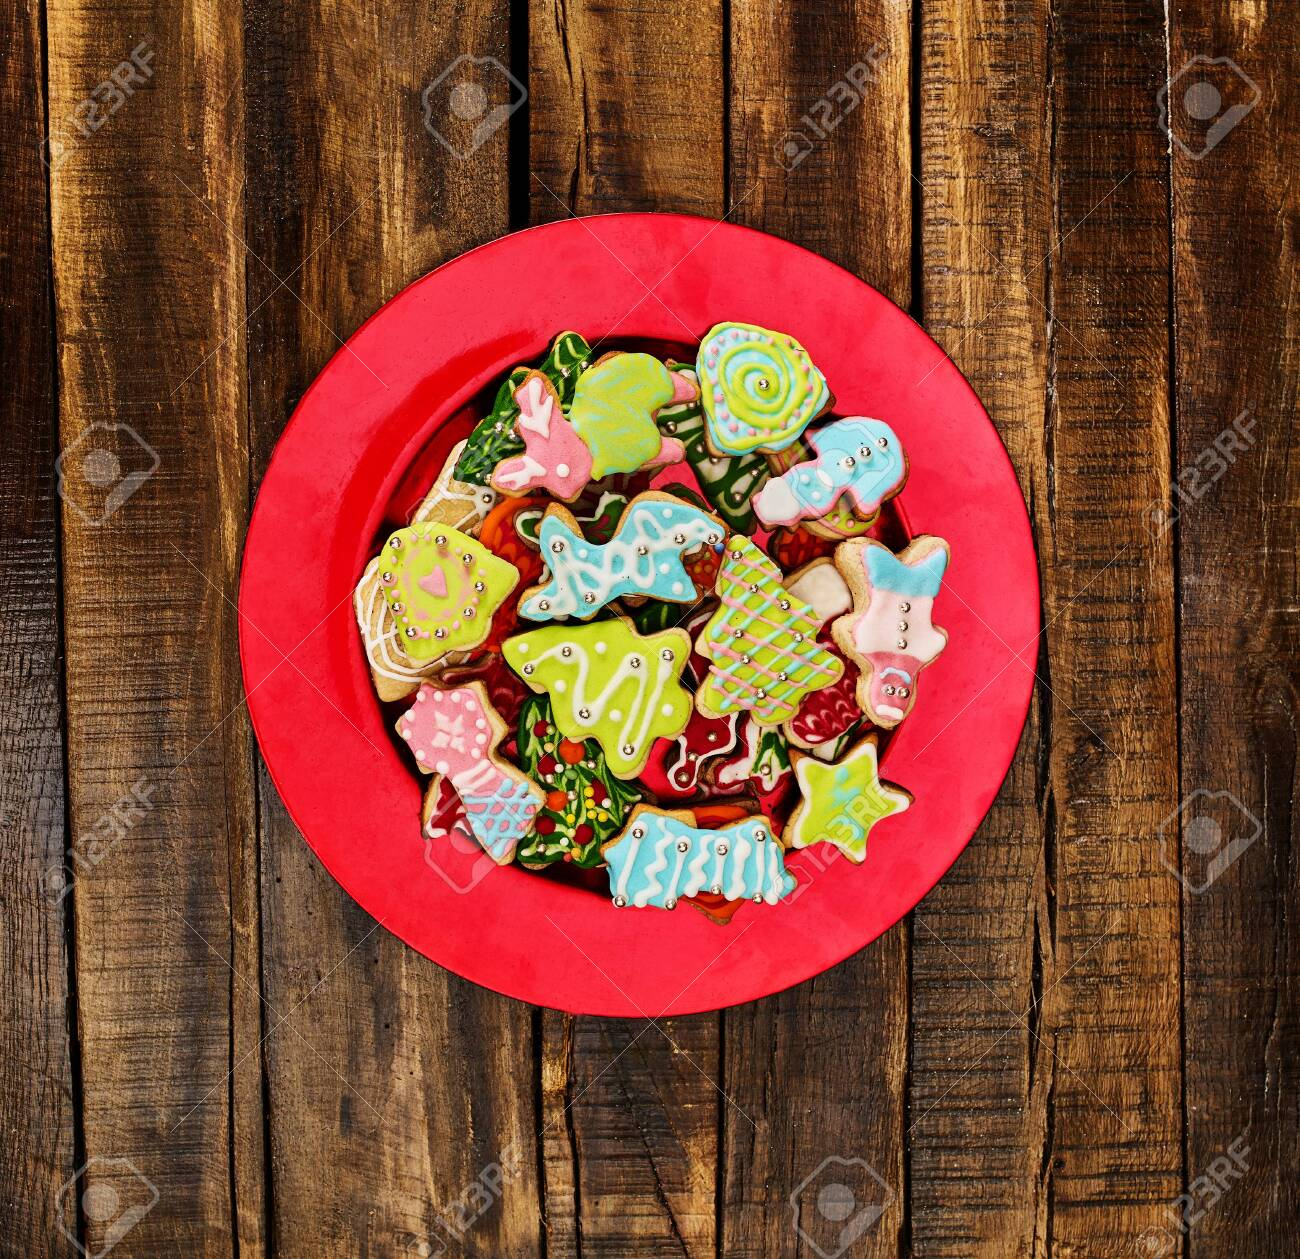 Christmas gingerbread cookies on red Xmas plate and wooden boards background . Top view square design frame with copy space top. - 133939723